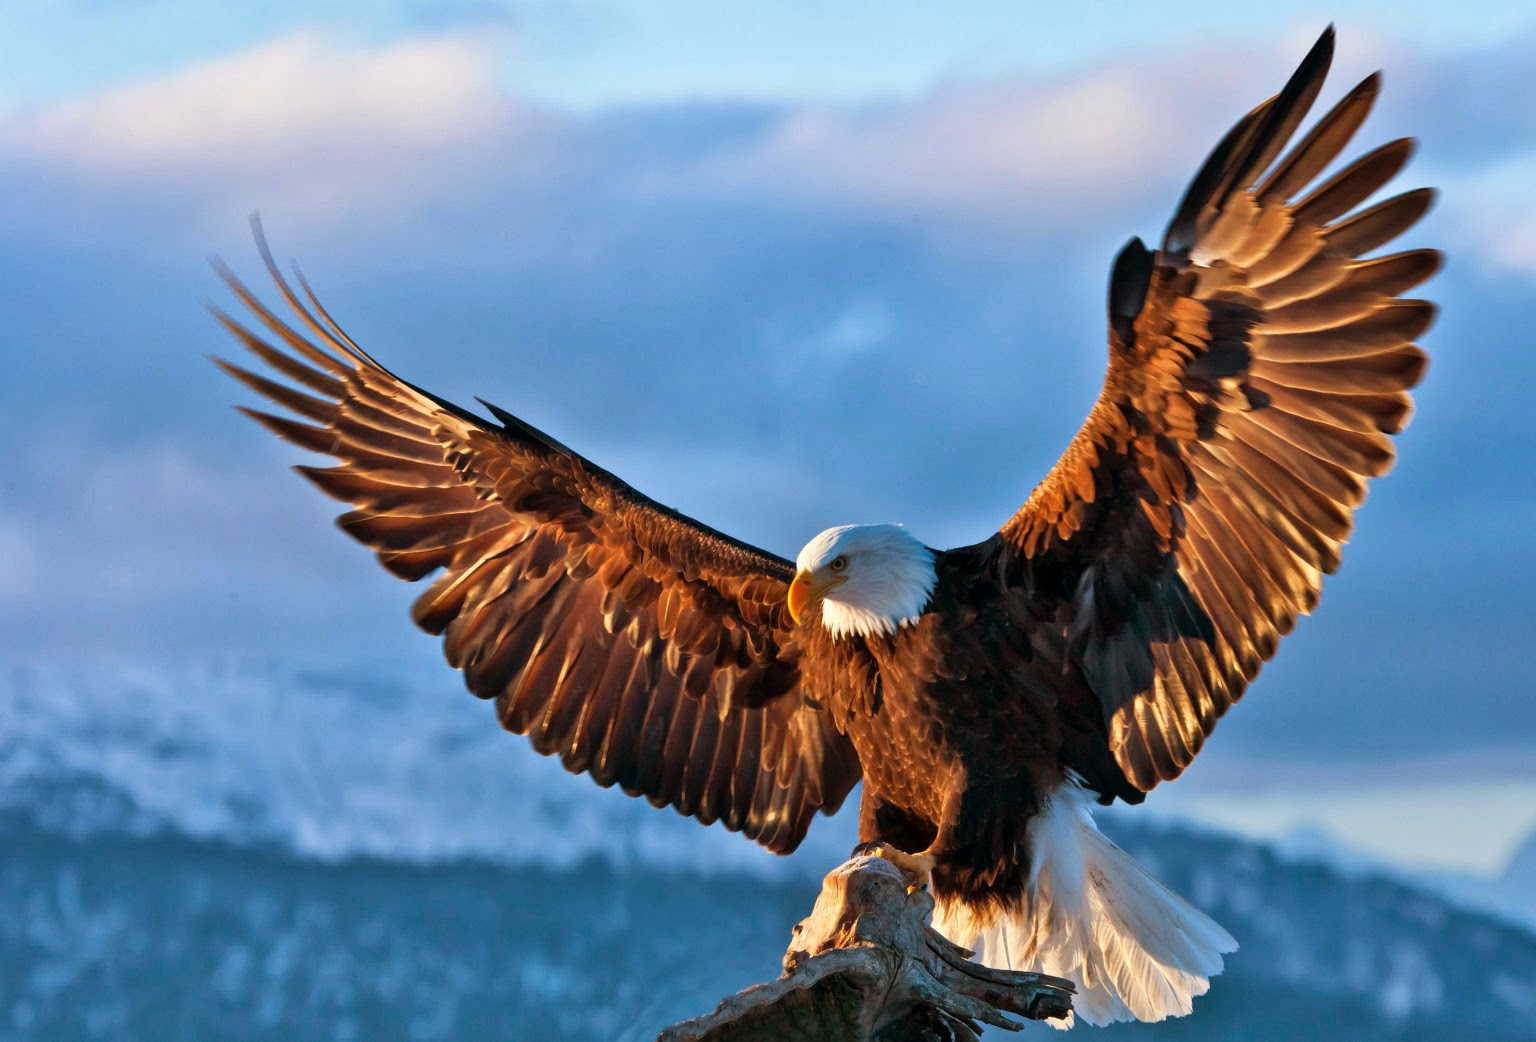 Eagle bird images - photo#2